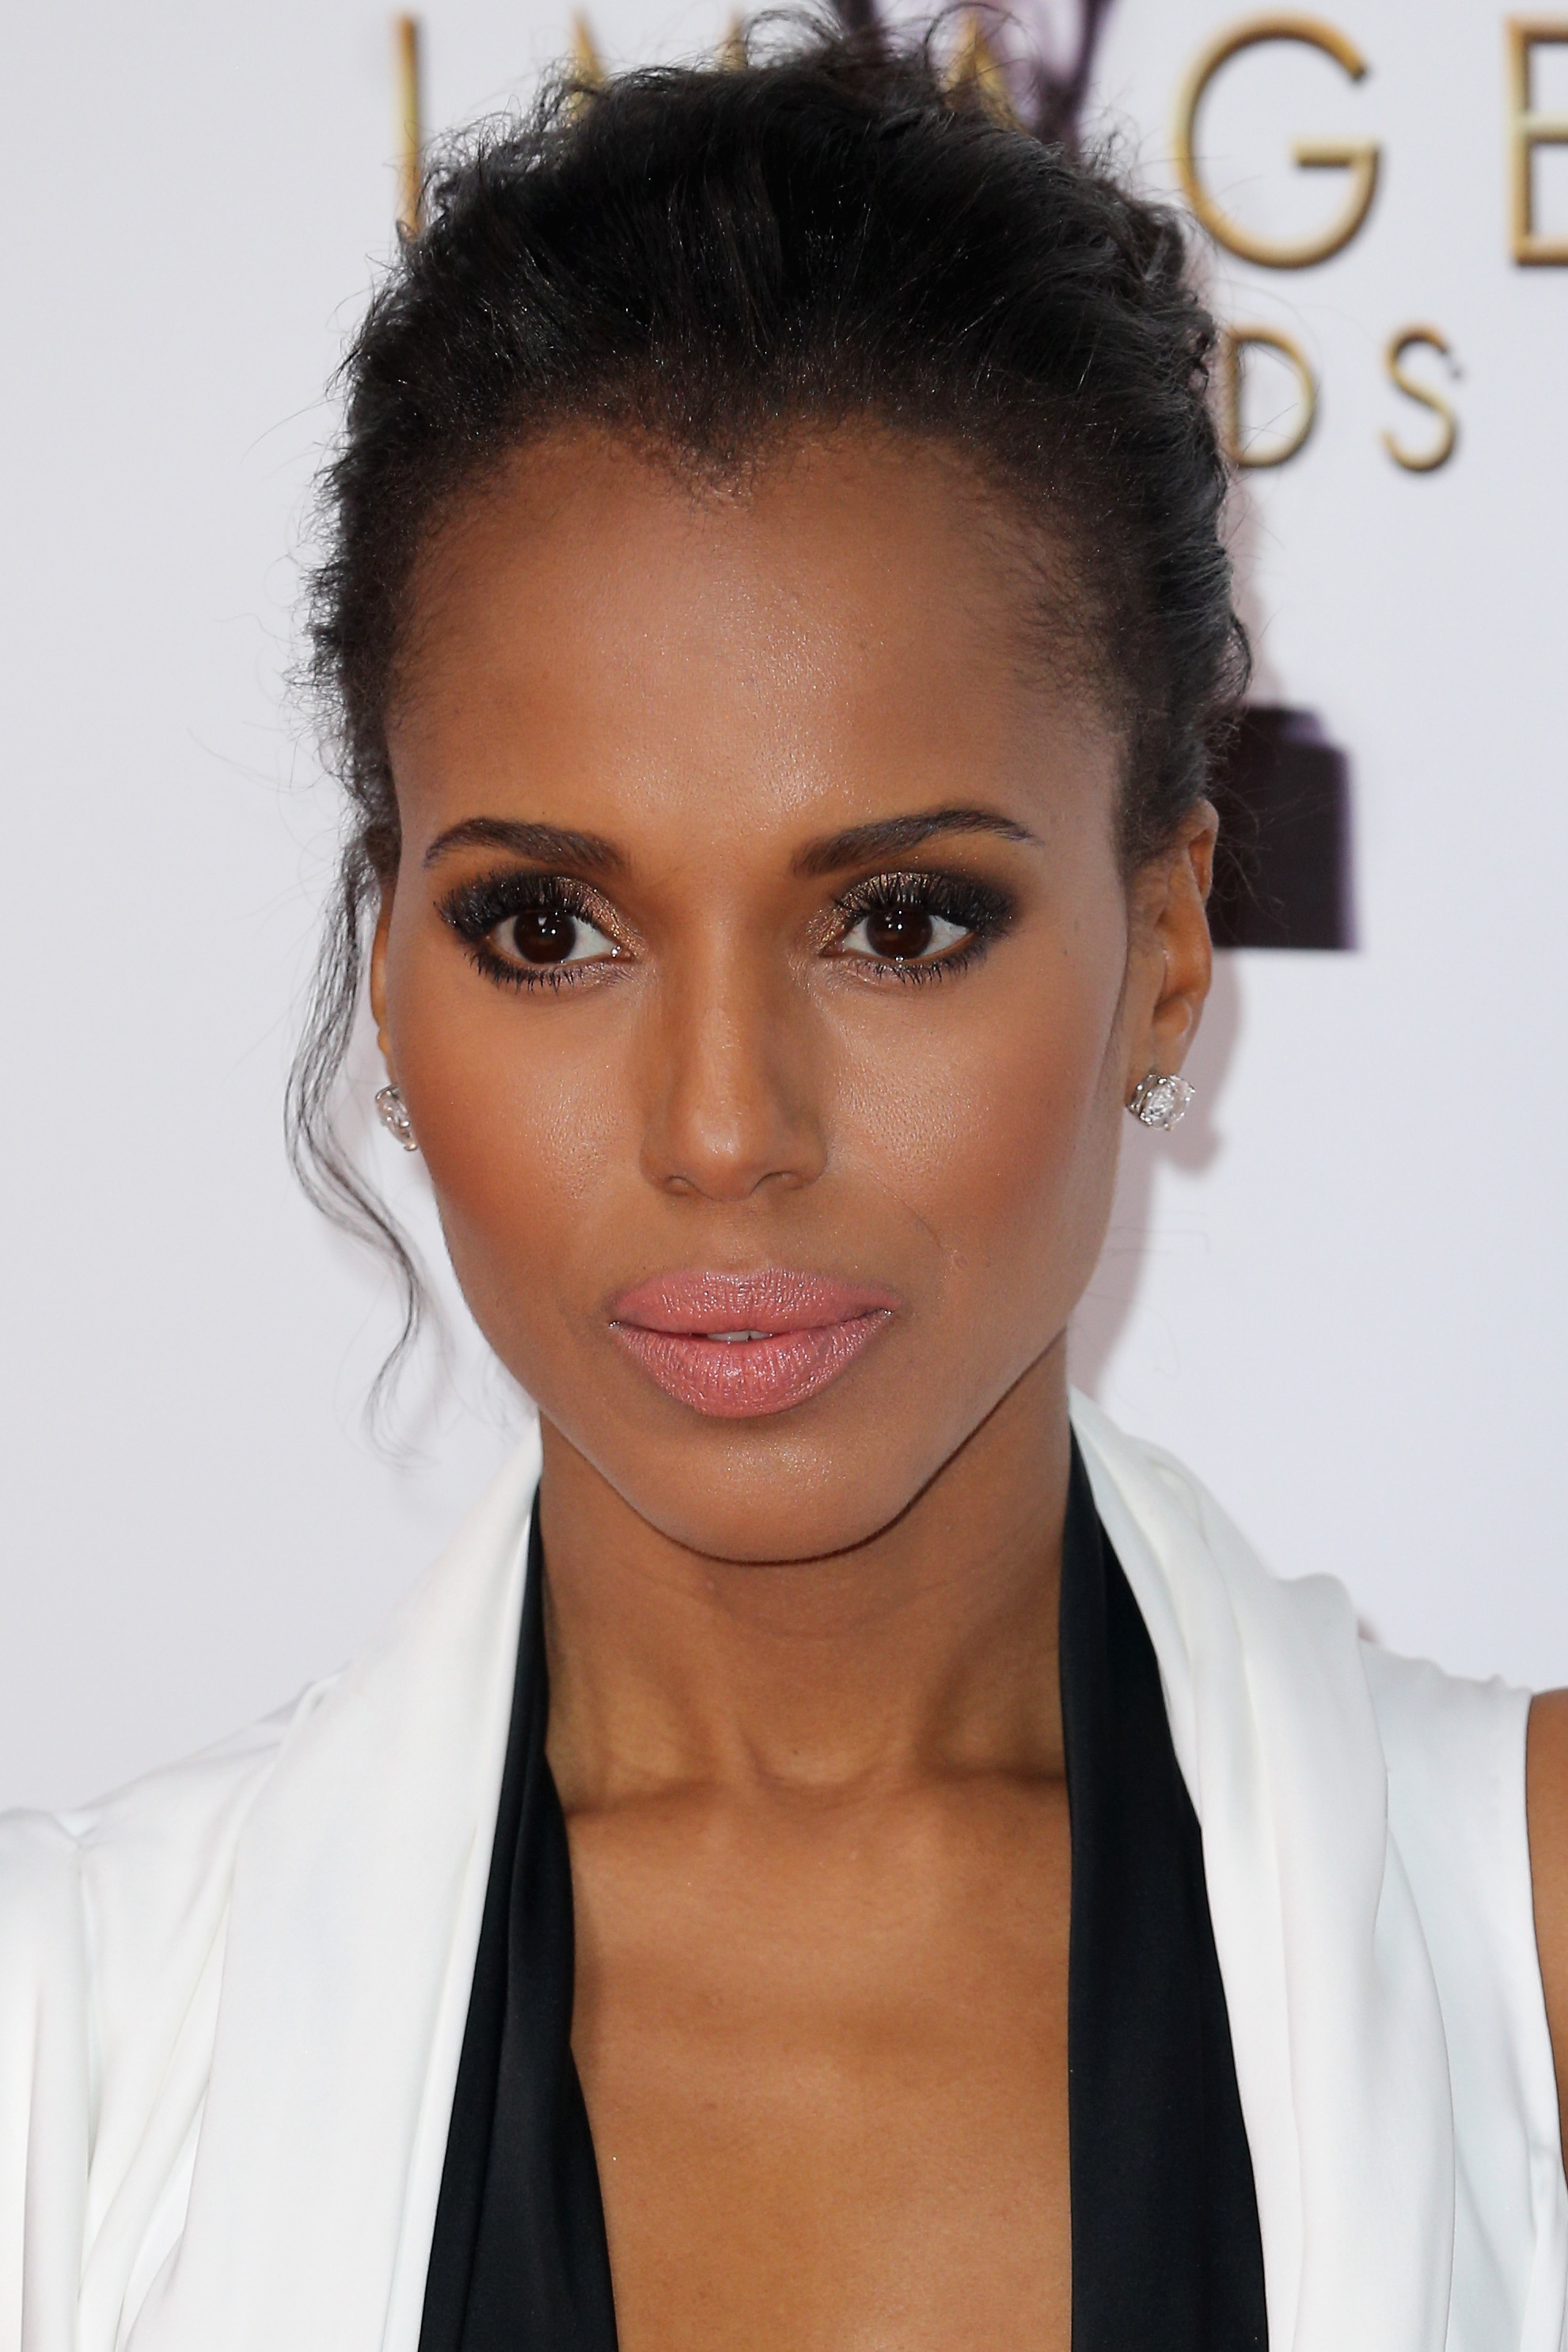 Kerry Washingtons Advice For Her Younger Self Includes One Piece Of